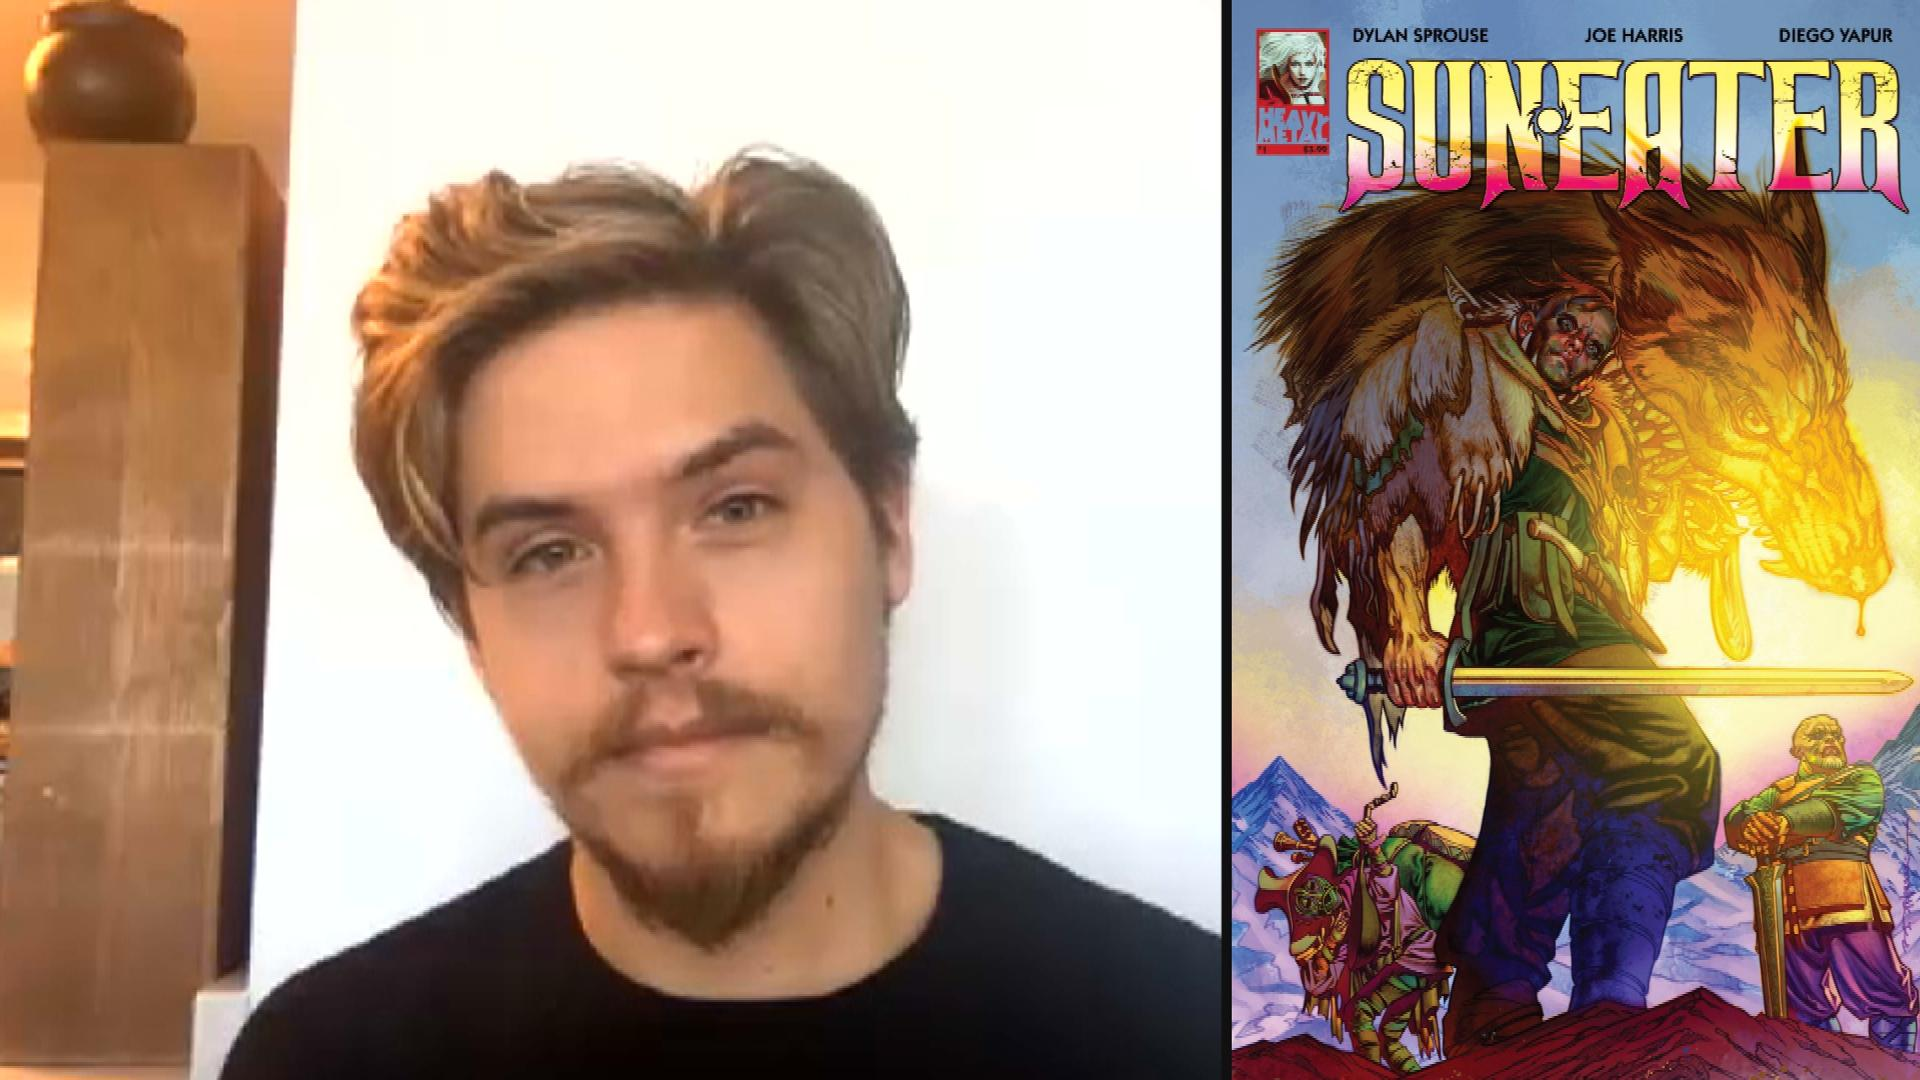 Dylan Sprouse Opens Up About New Comic Book 'Sun Eater' (Exclusive)